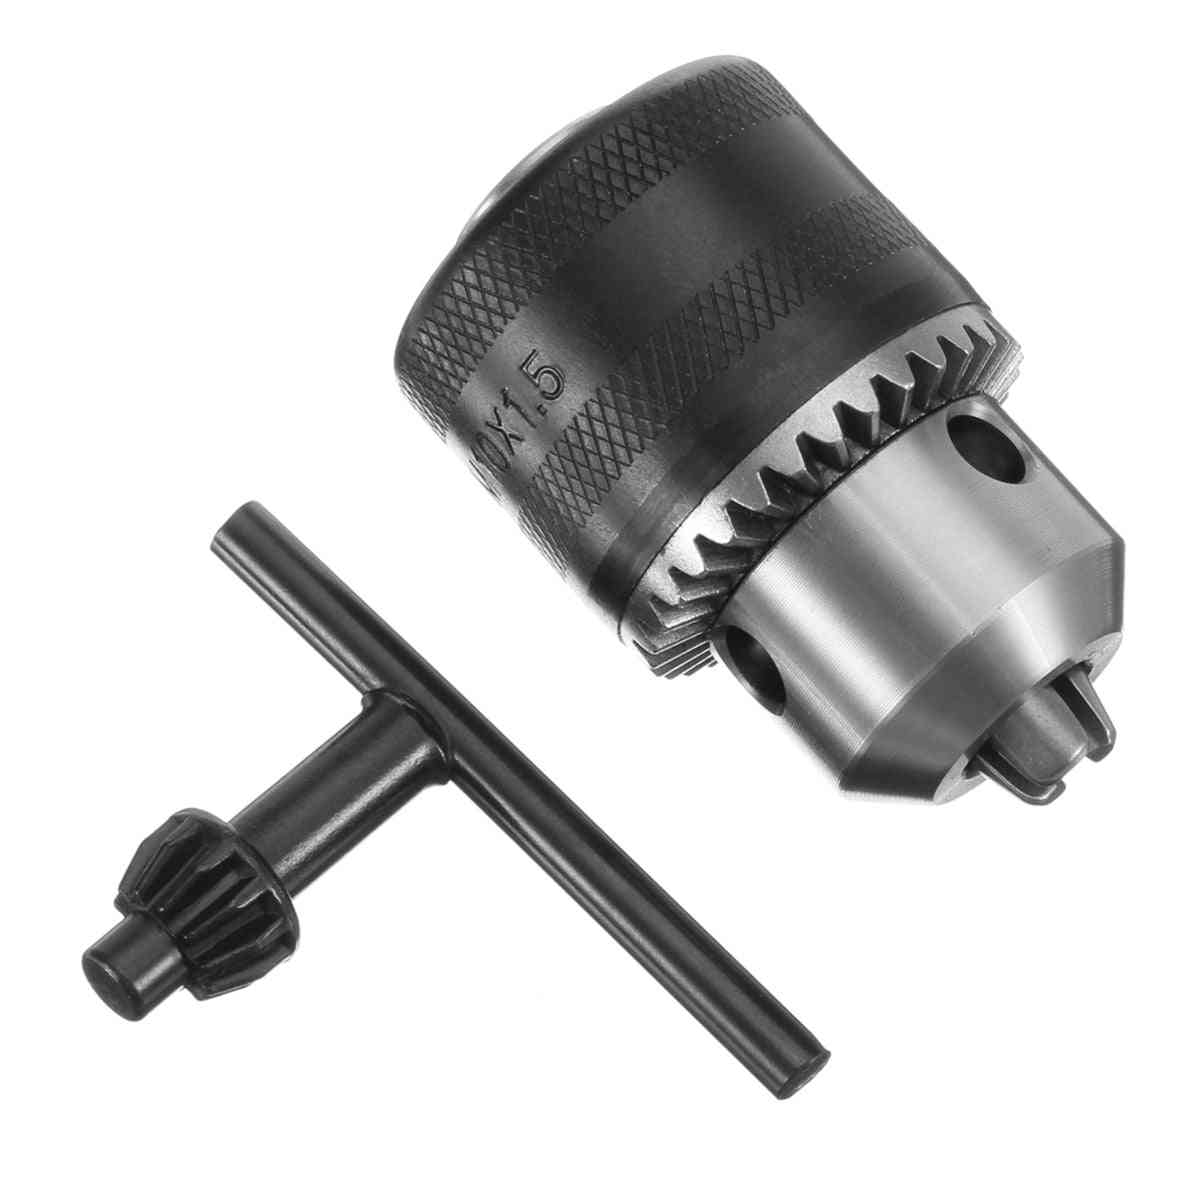 Chuck Holder Power Drill Convert Adapter Electric Angle Grinder